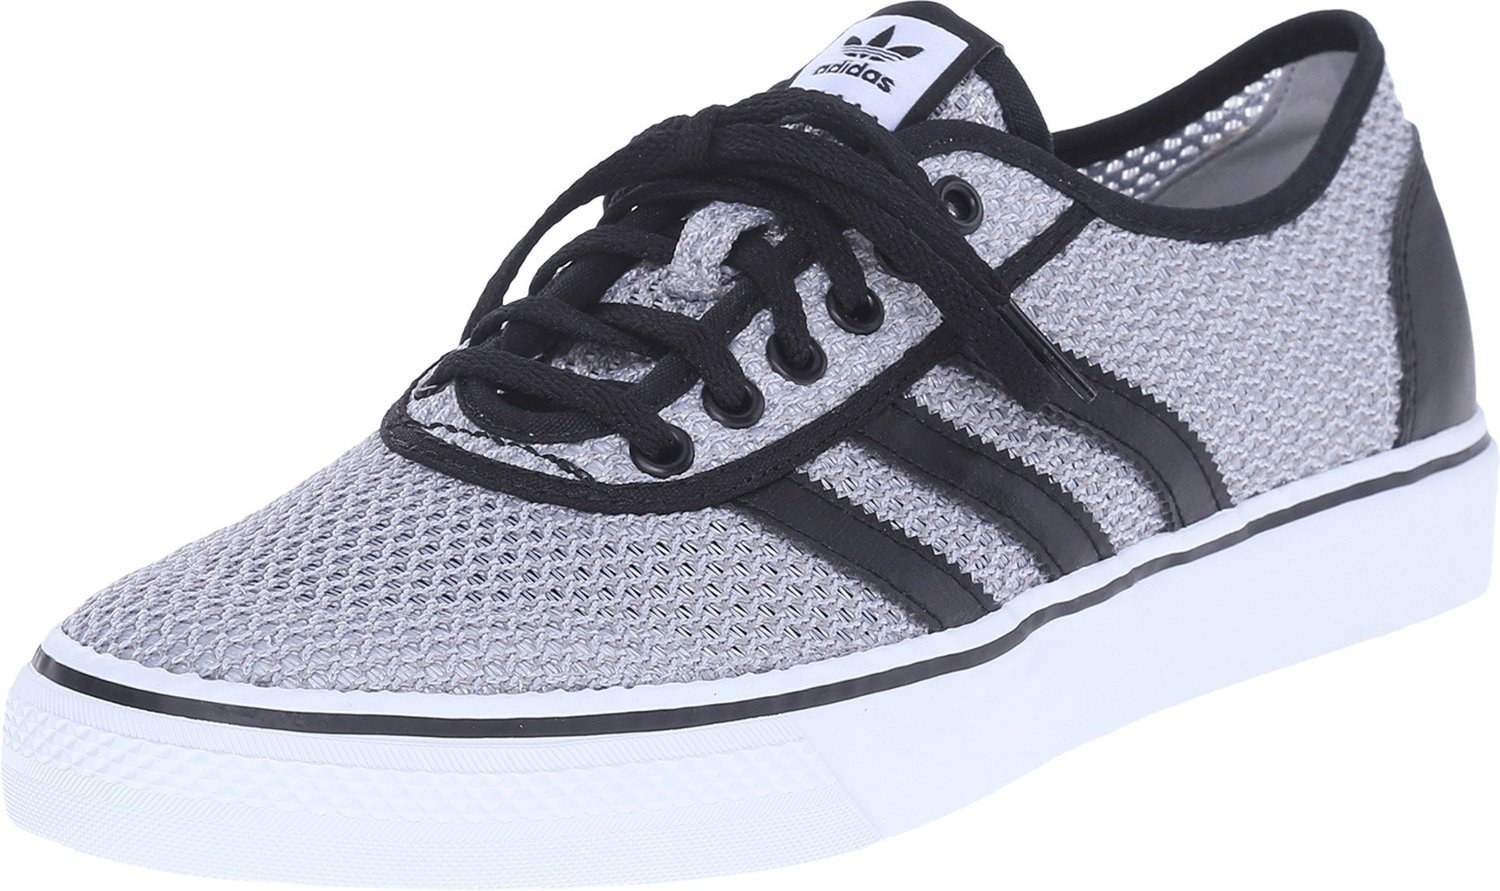 1174bd523b44b Galleon - Adidas Skateboarding Men's Adi-Ease Clima Black/White ...